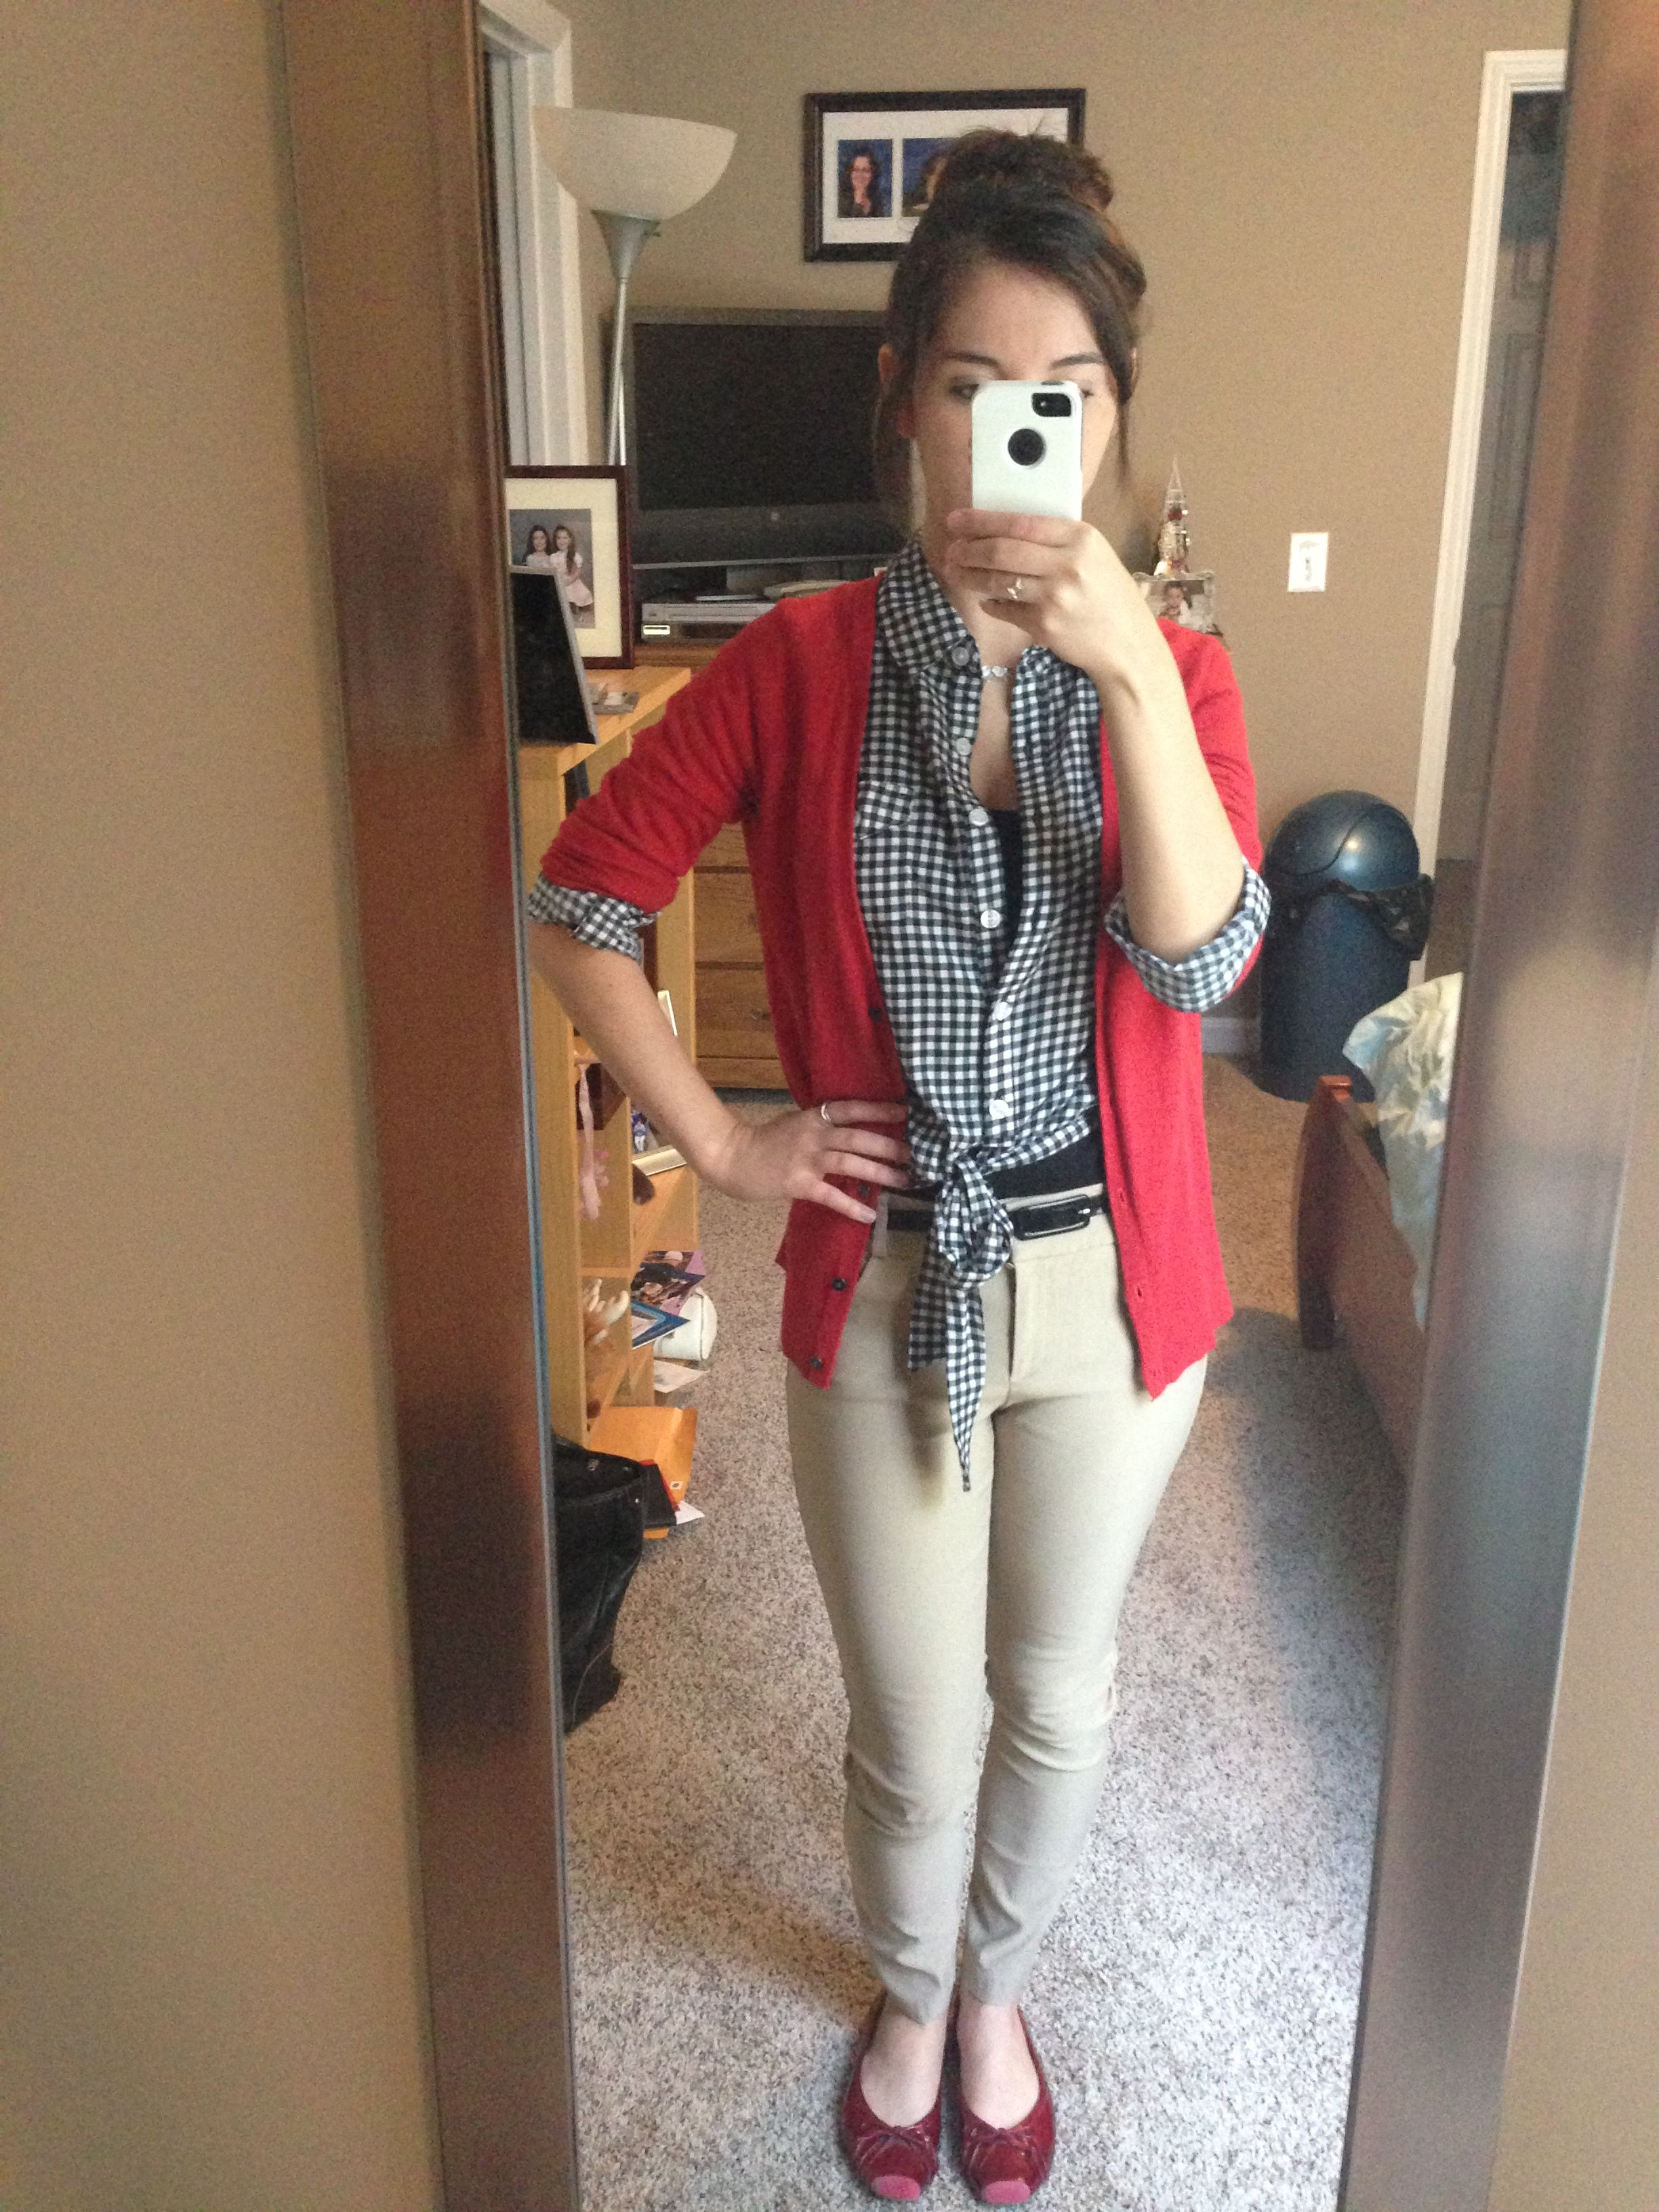 7c1b8bc8bd6 My attempt at making red and khaki look good for work at Target! - will  need ideas like this to dress up this uniform